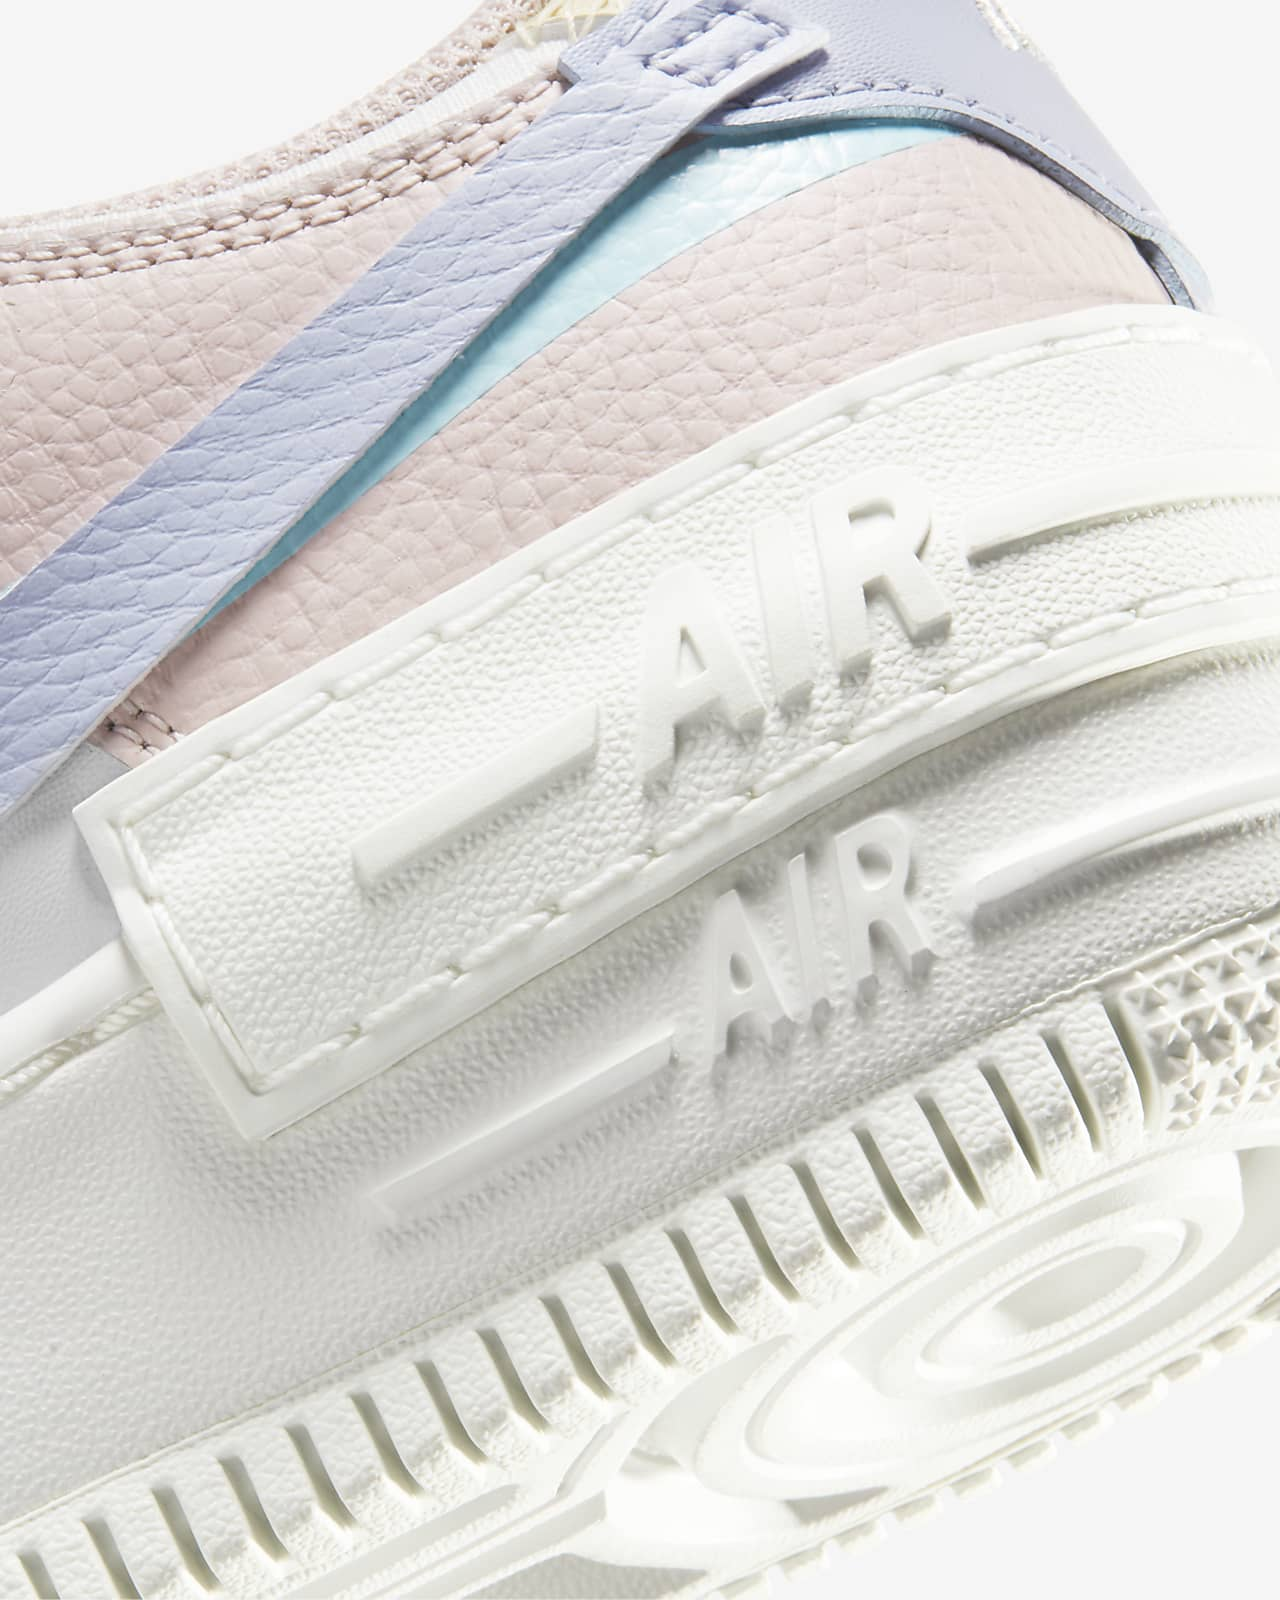 Nike Air Force 1 Shadow Women S Shoe Nike Com Summit whiteglacier bluefossilghost geslacht : nike air force 1 shadow women s shoe